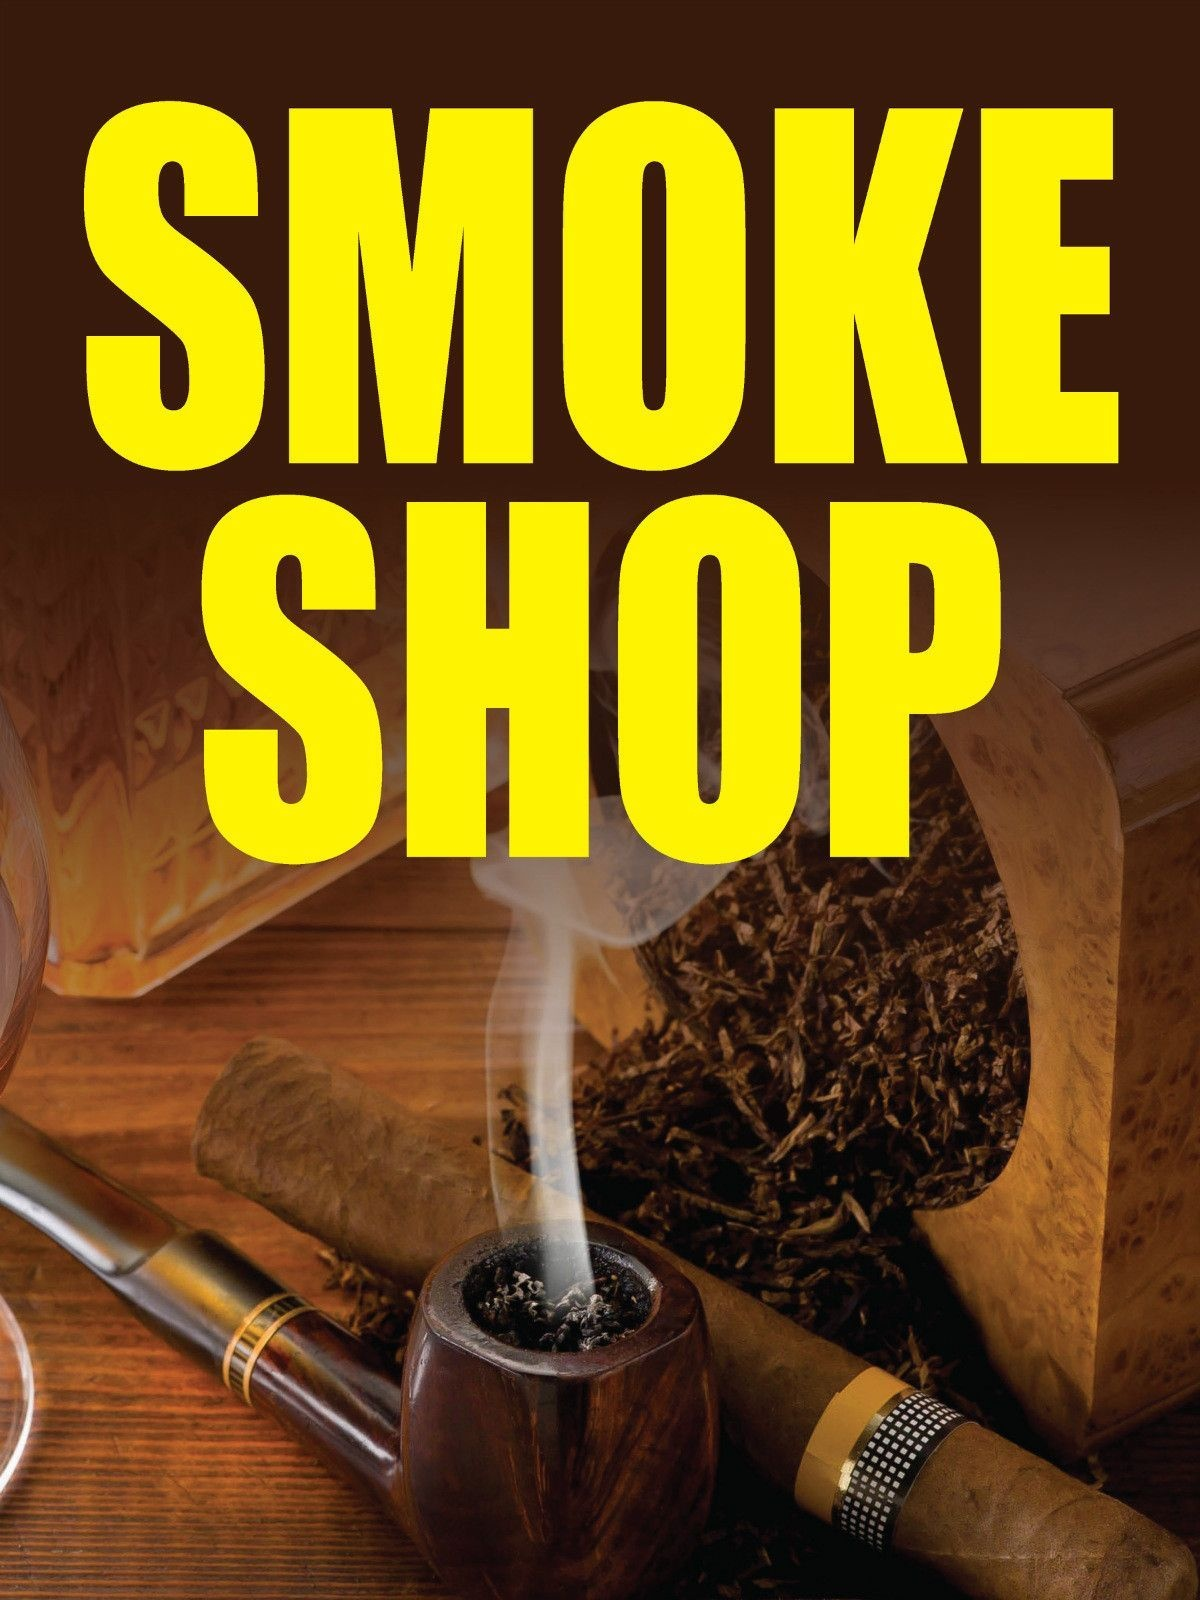 Full Service Smoke Shop and Tobacco Store